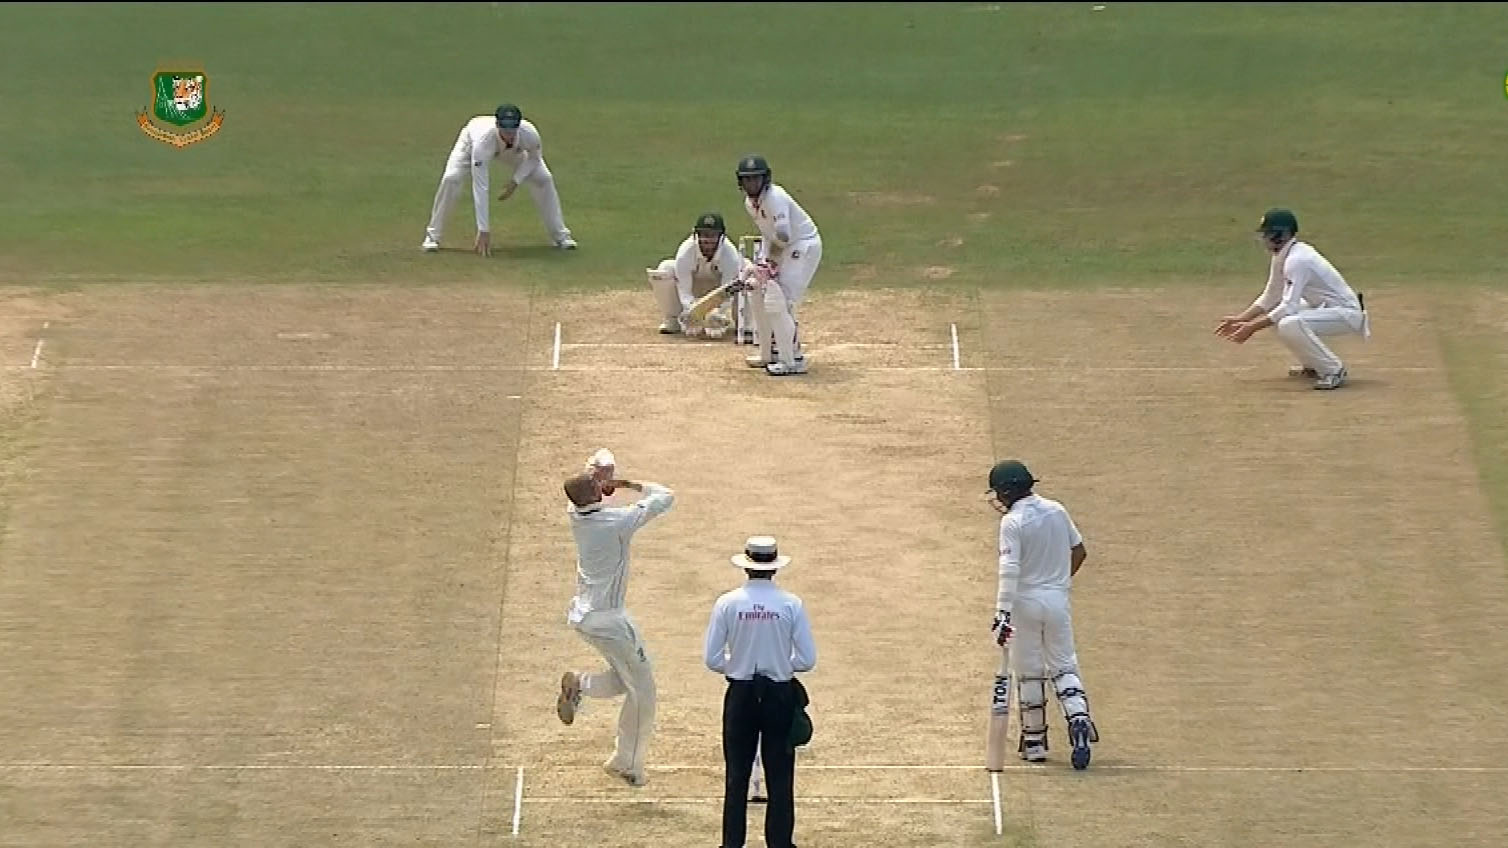 Lyon gets early wicket on day two